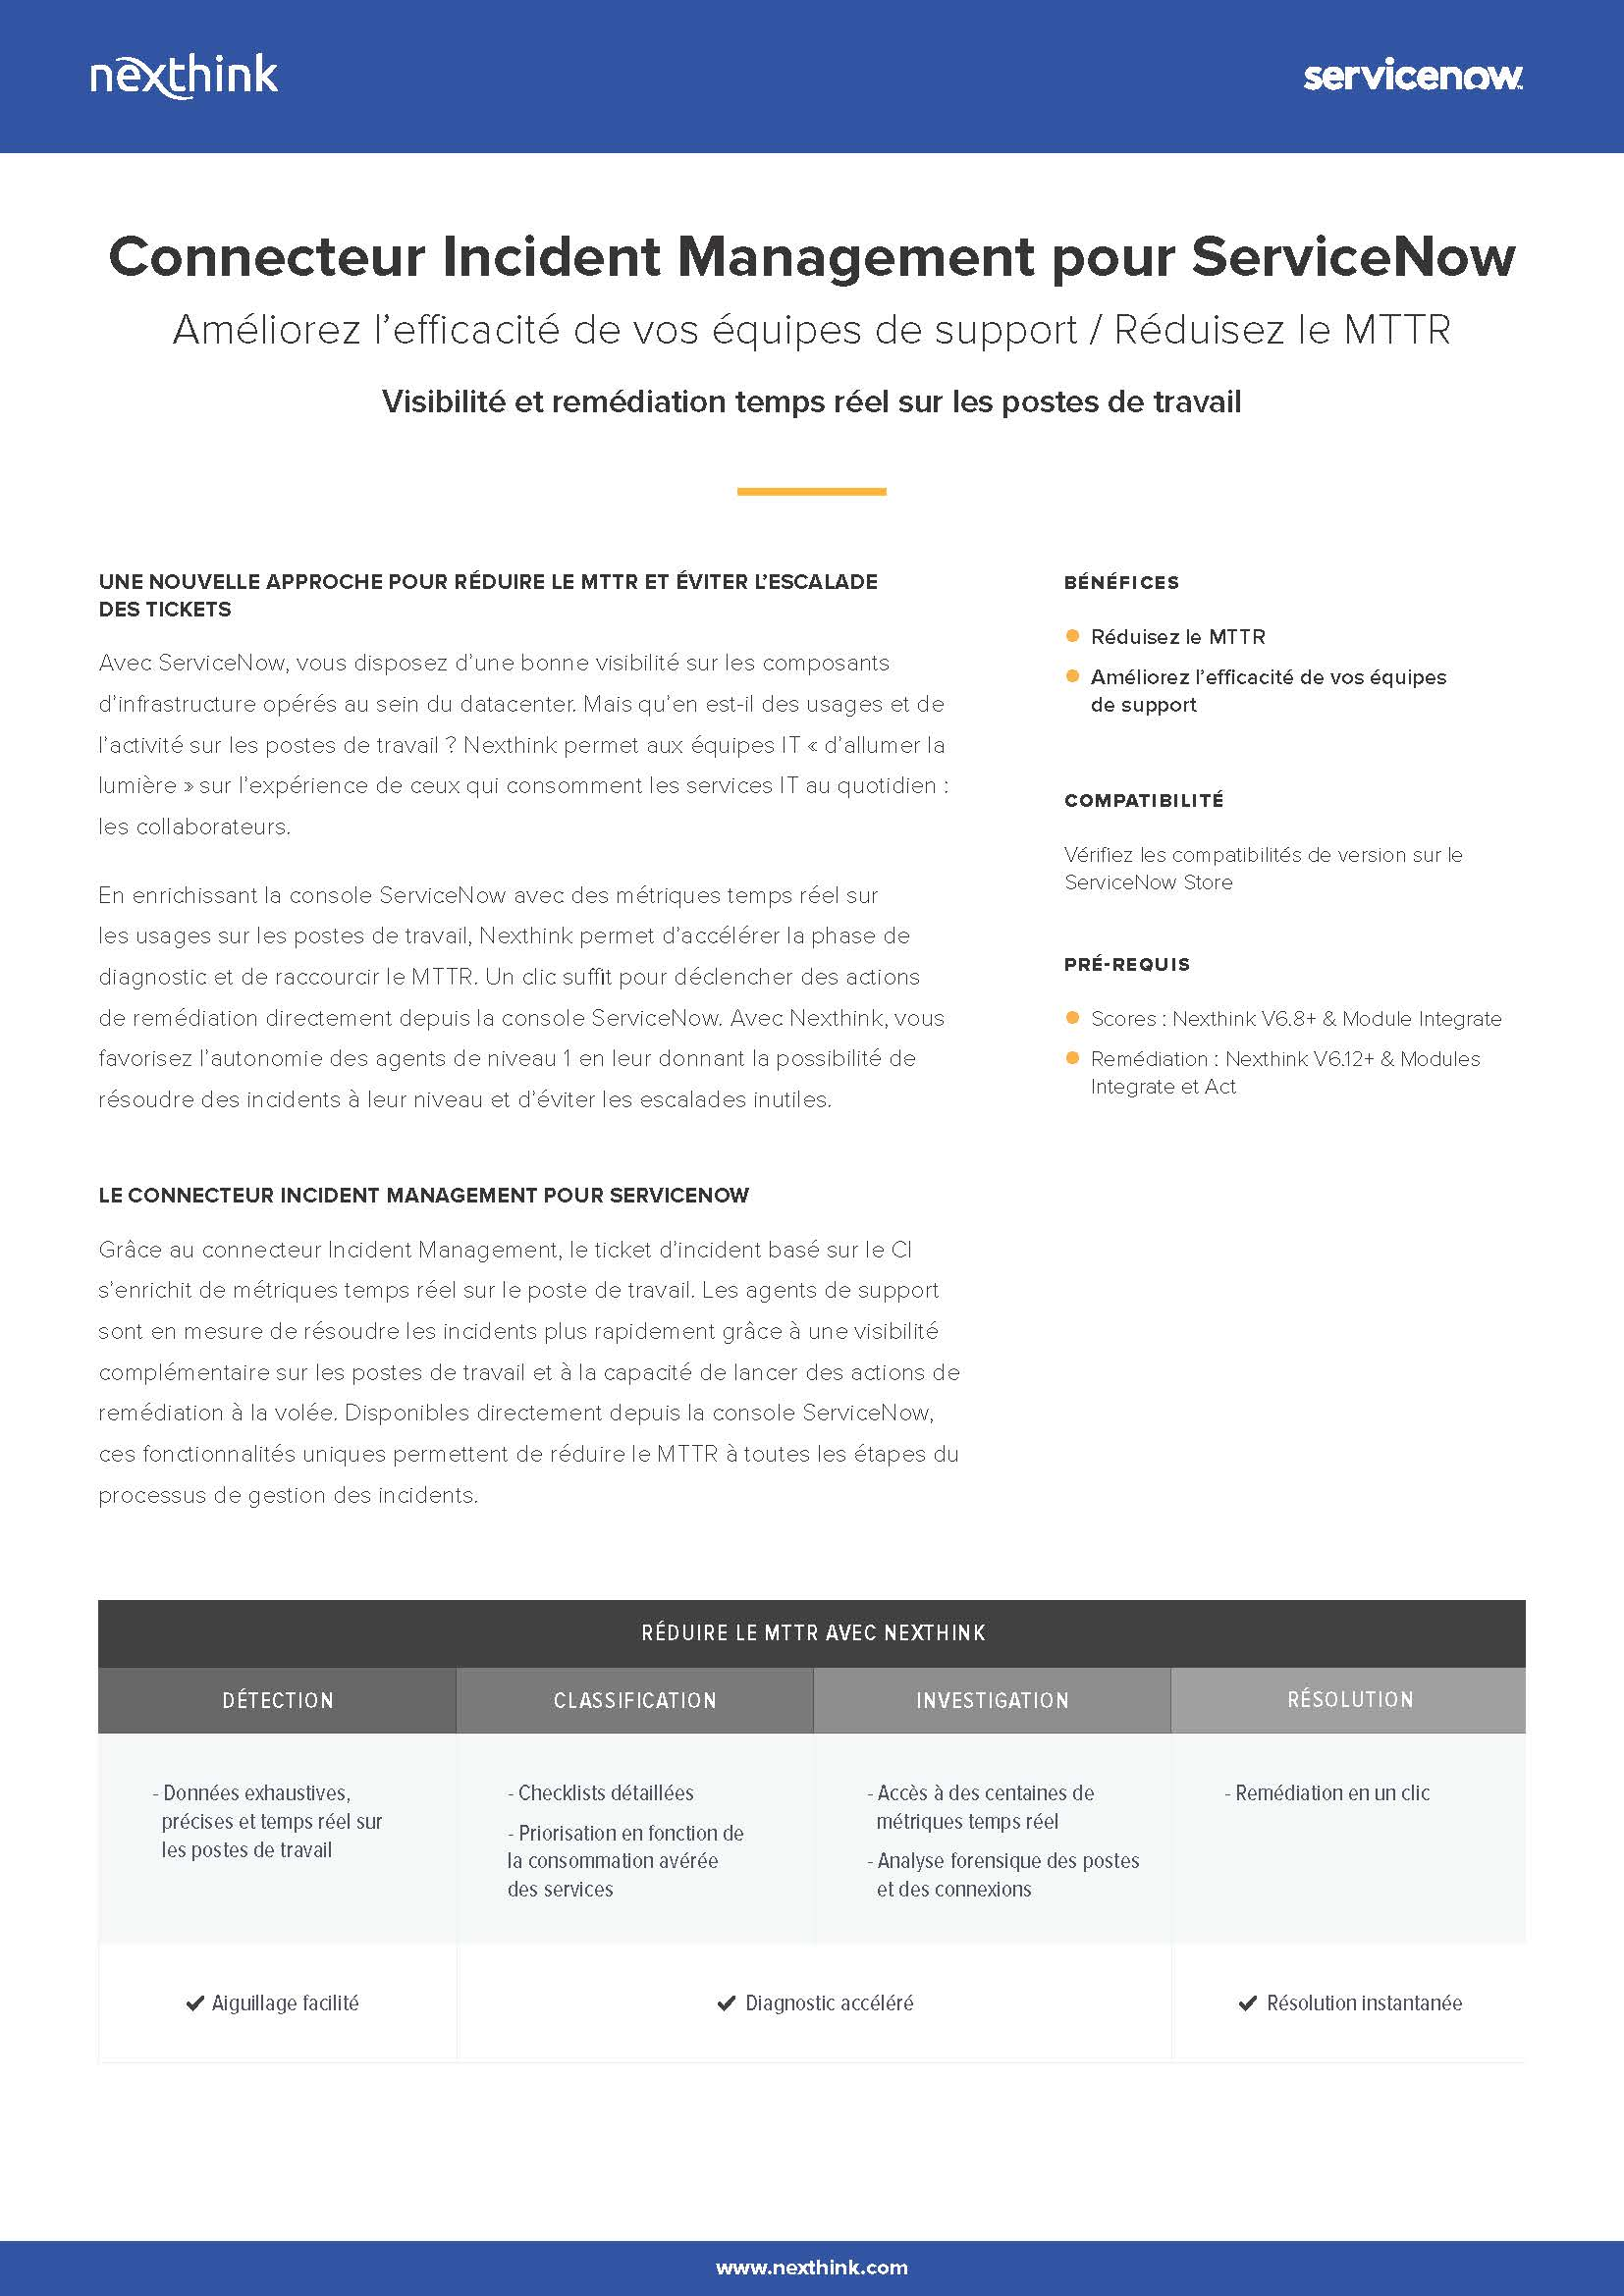 Connecteur Incident Management pour ServiceNow